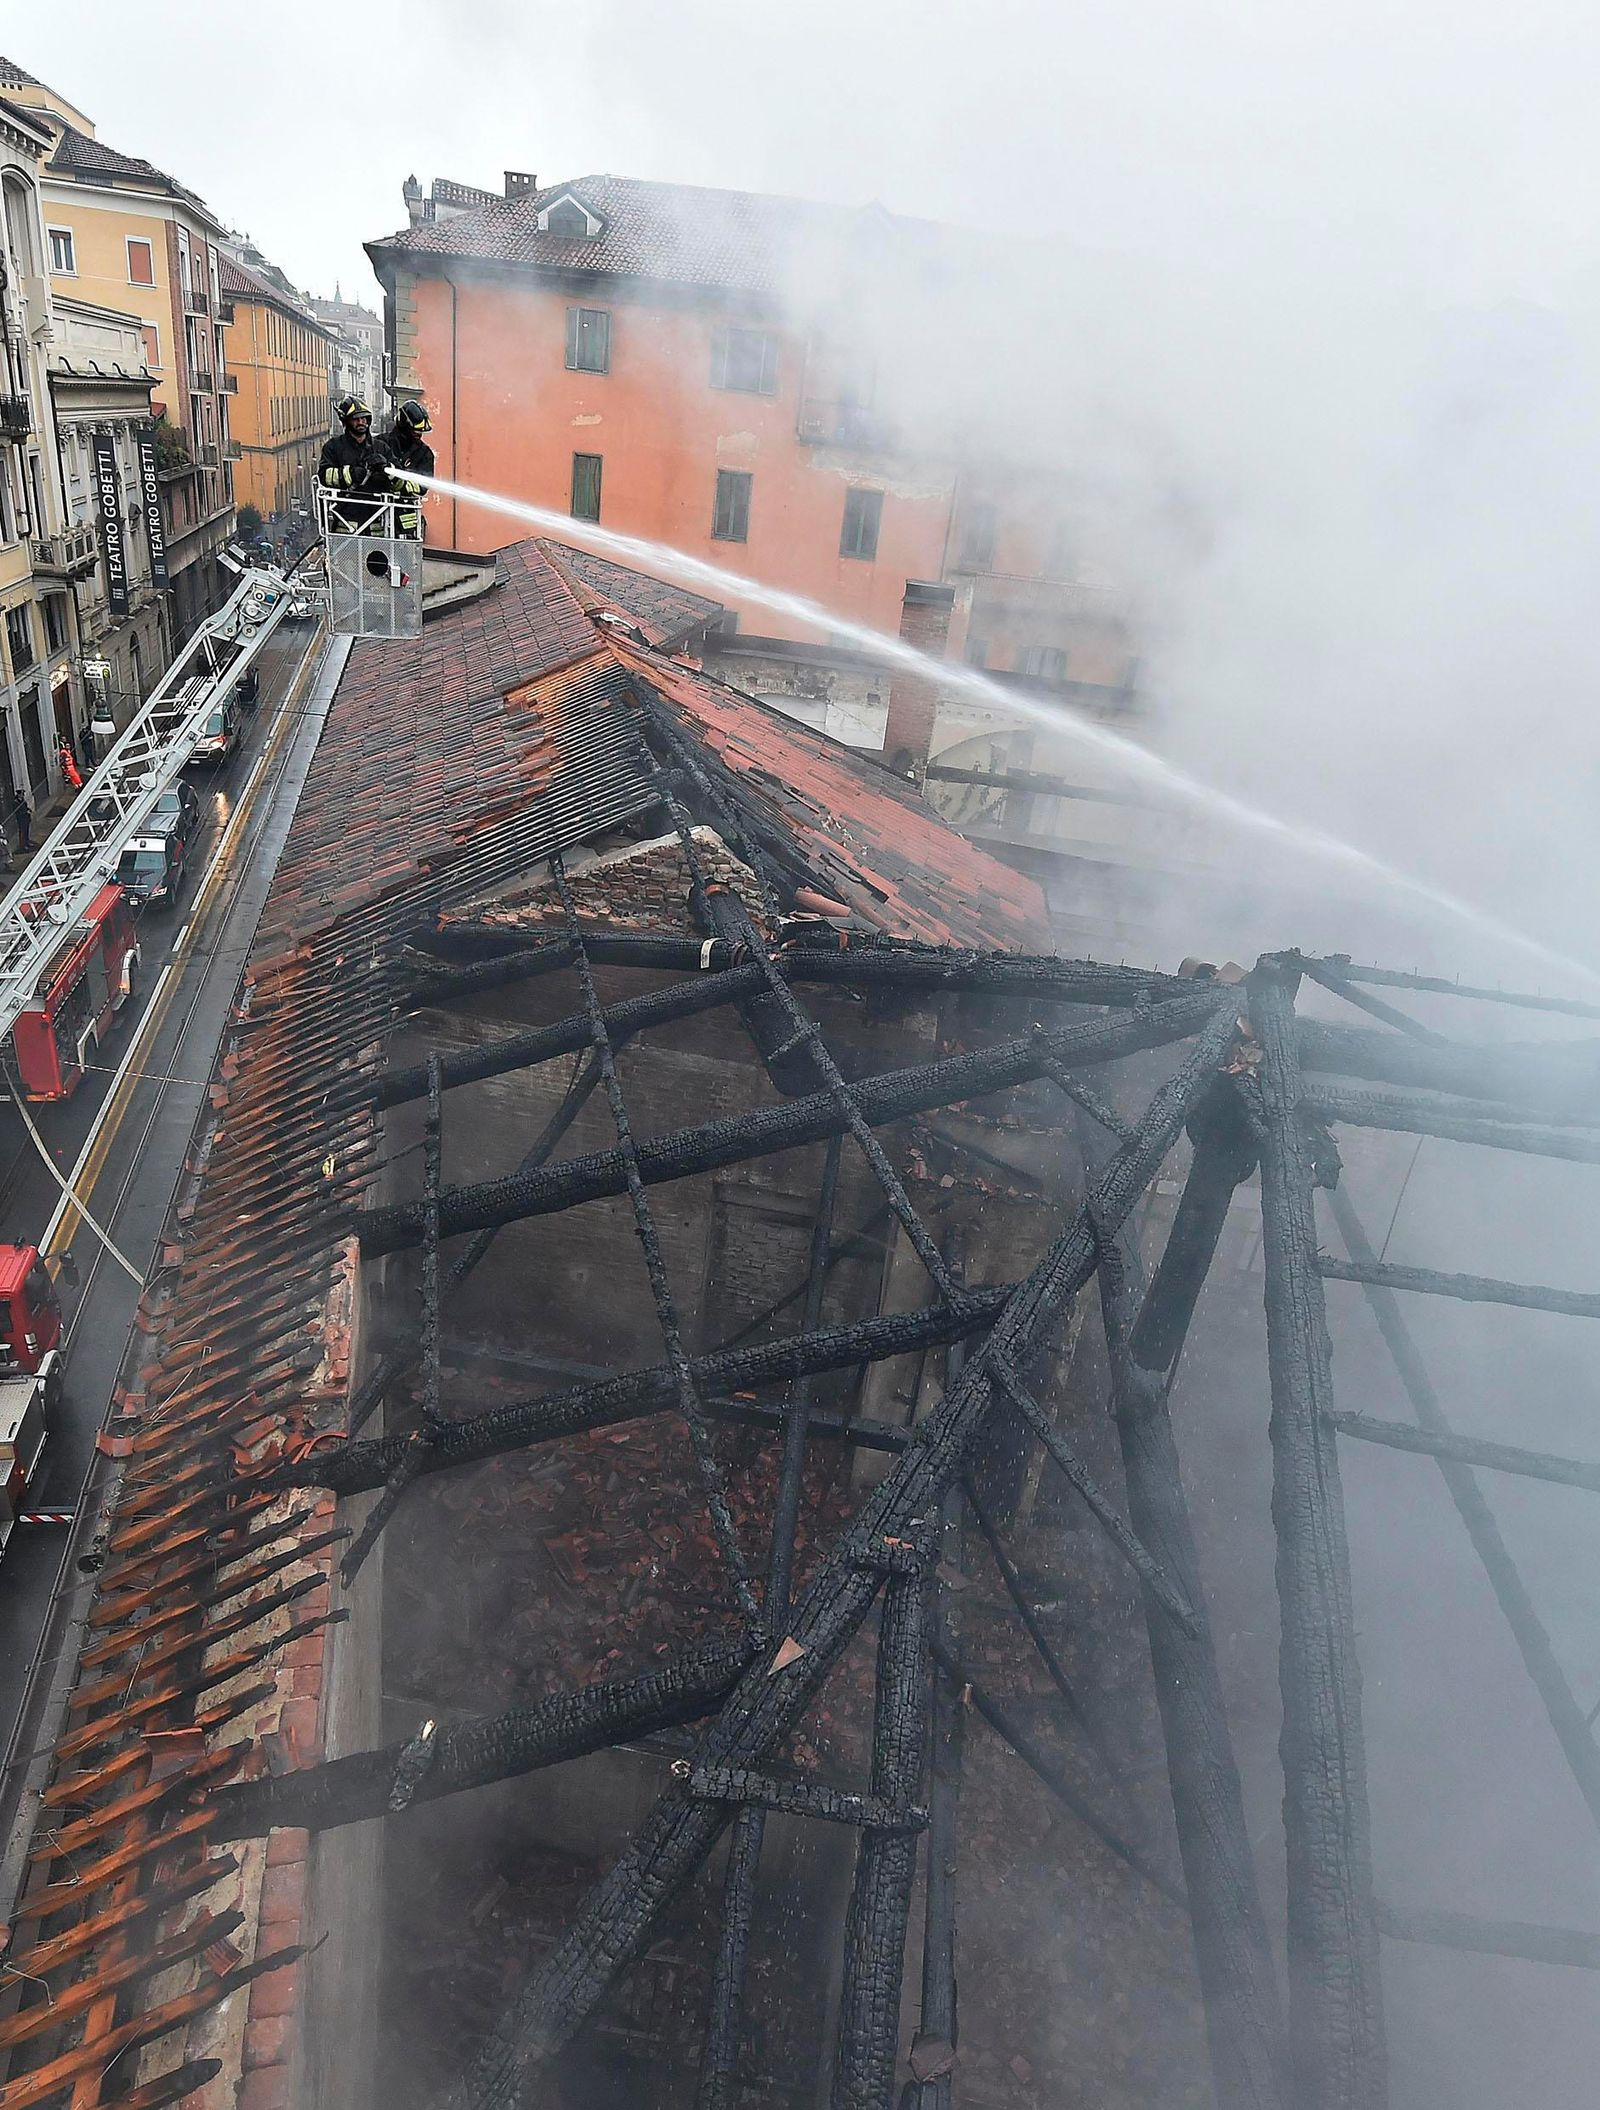 Firefighters put out a fire on the rooftop of the Cavallerizza Reale, in Turin, northern Italy, Monday, Oct. 21, 2019(Alessandro Di Marco/ANSA via AP)